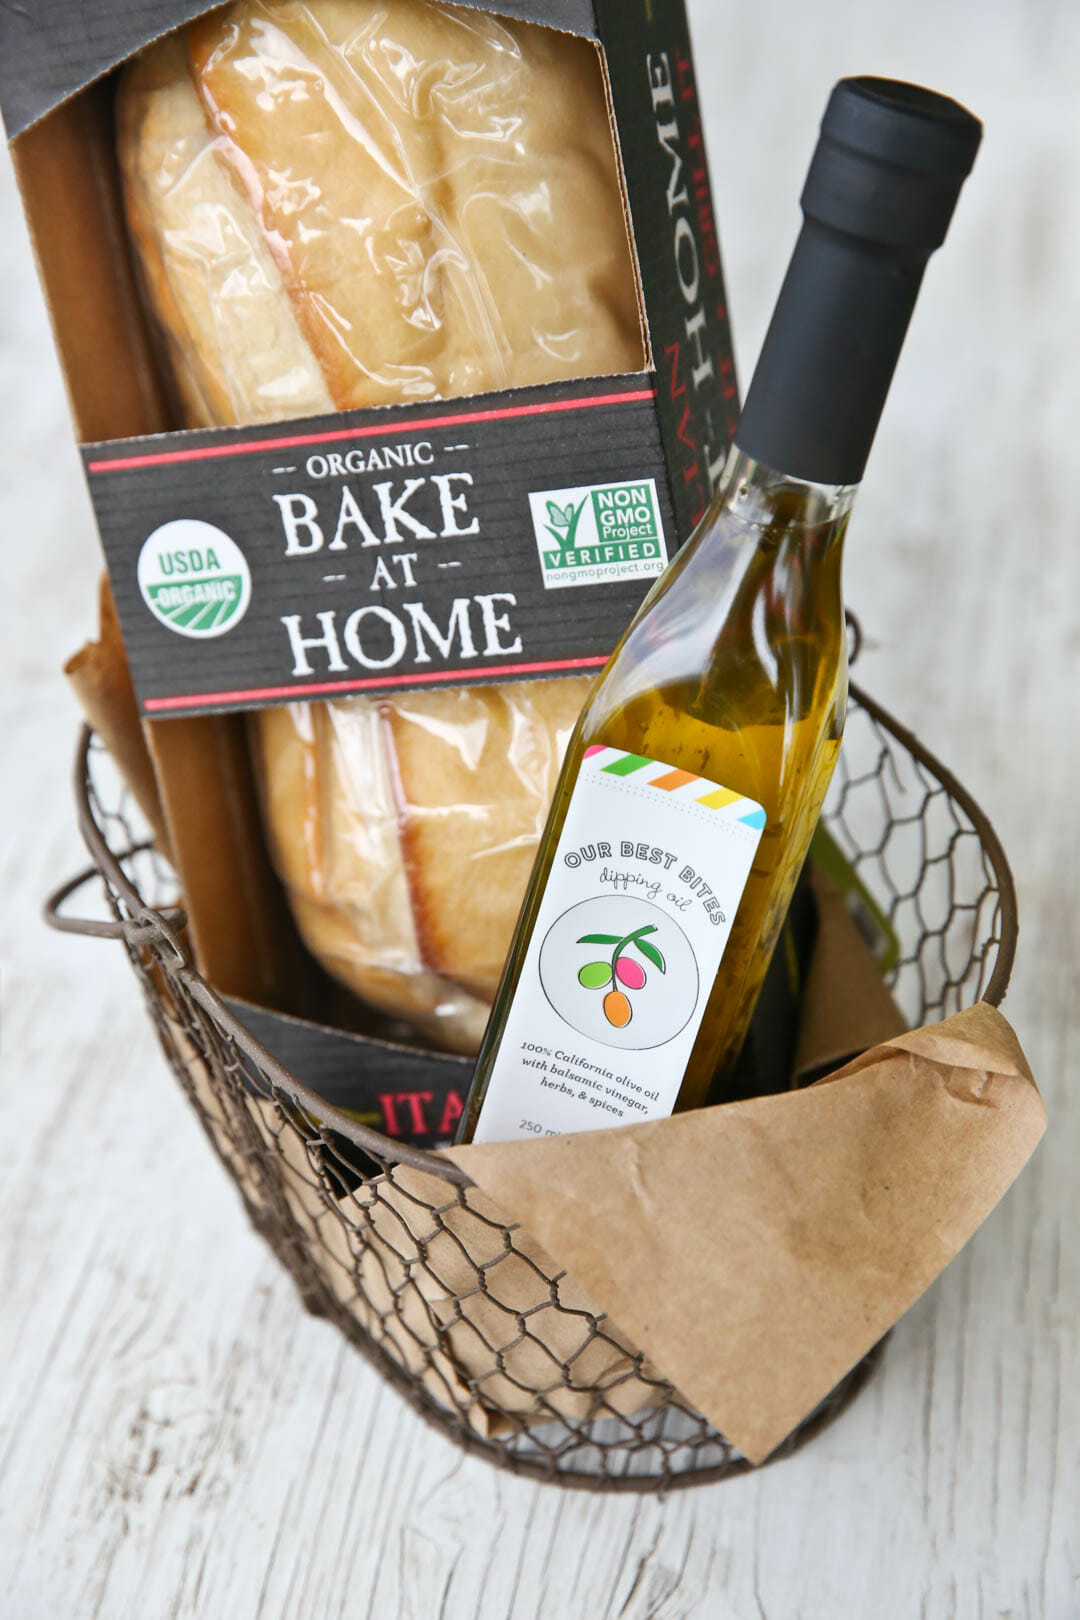 Mothers day gift ideas you could also grab a loaf of fresh bread from an actual bakery if youre gifting right away this is our go to gift for new neighbors solutioingenieria Choice Image